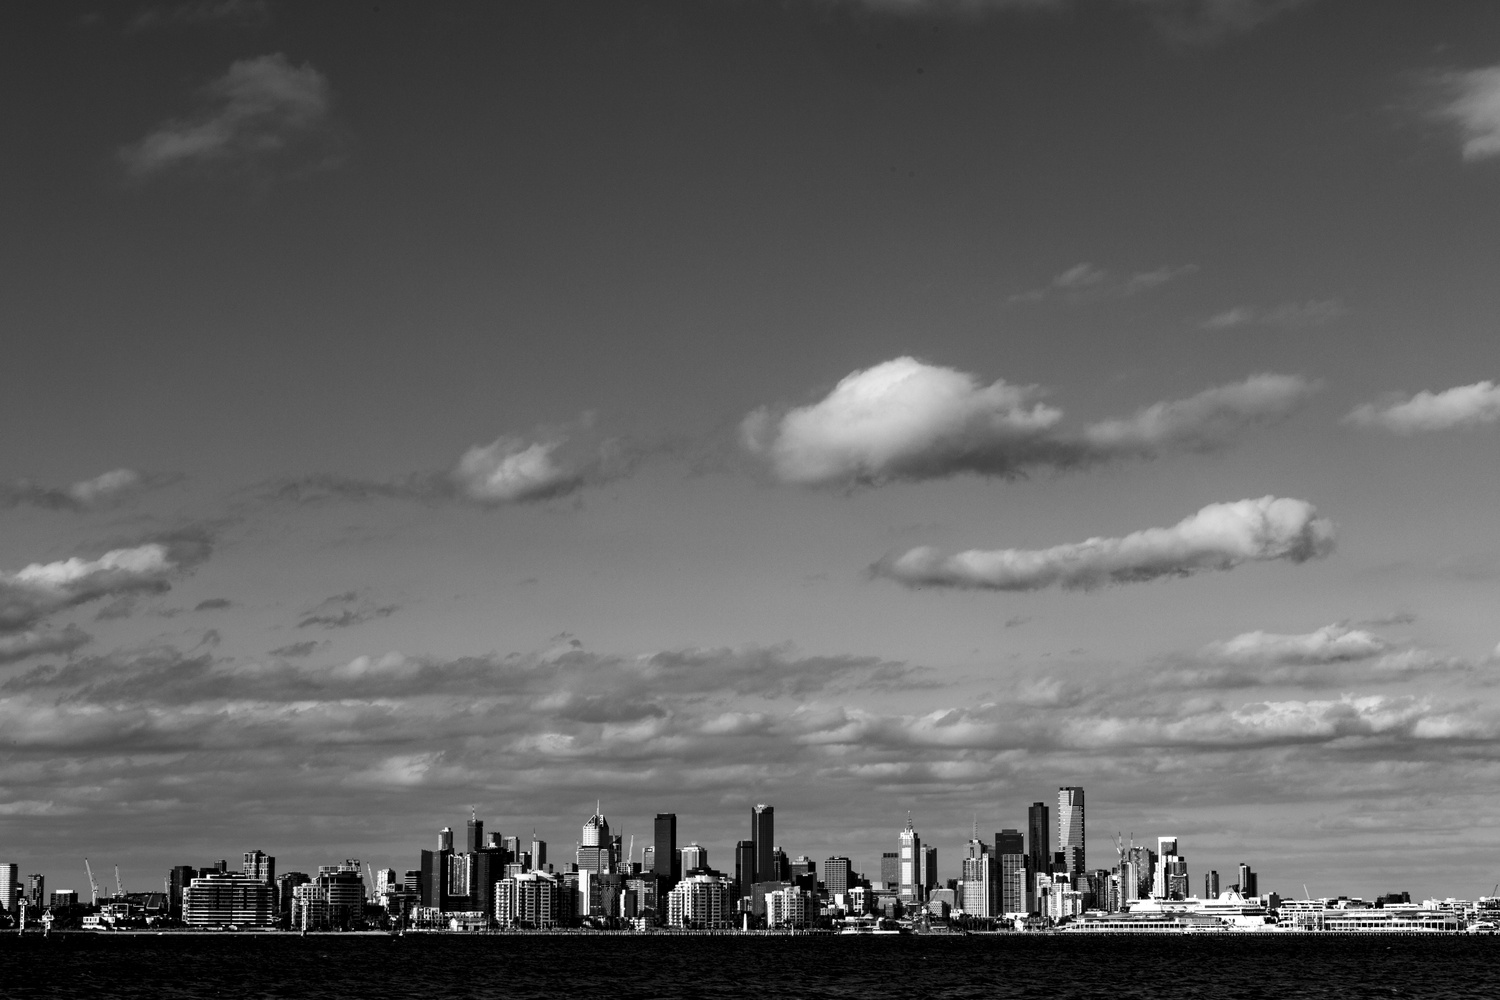 melbourne by Stephen Scully